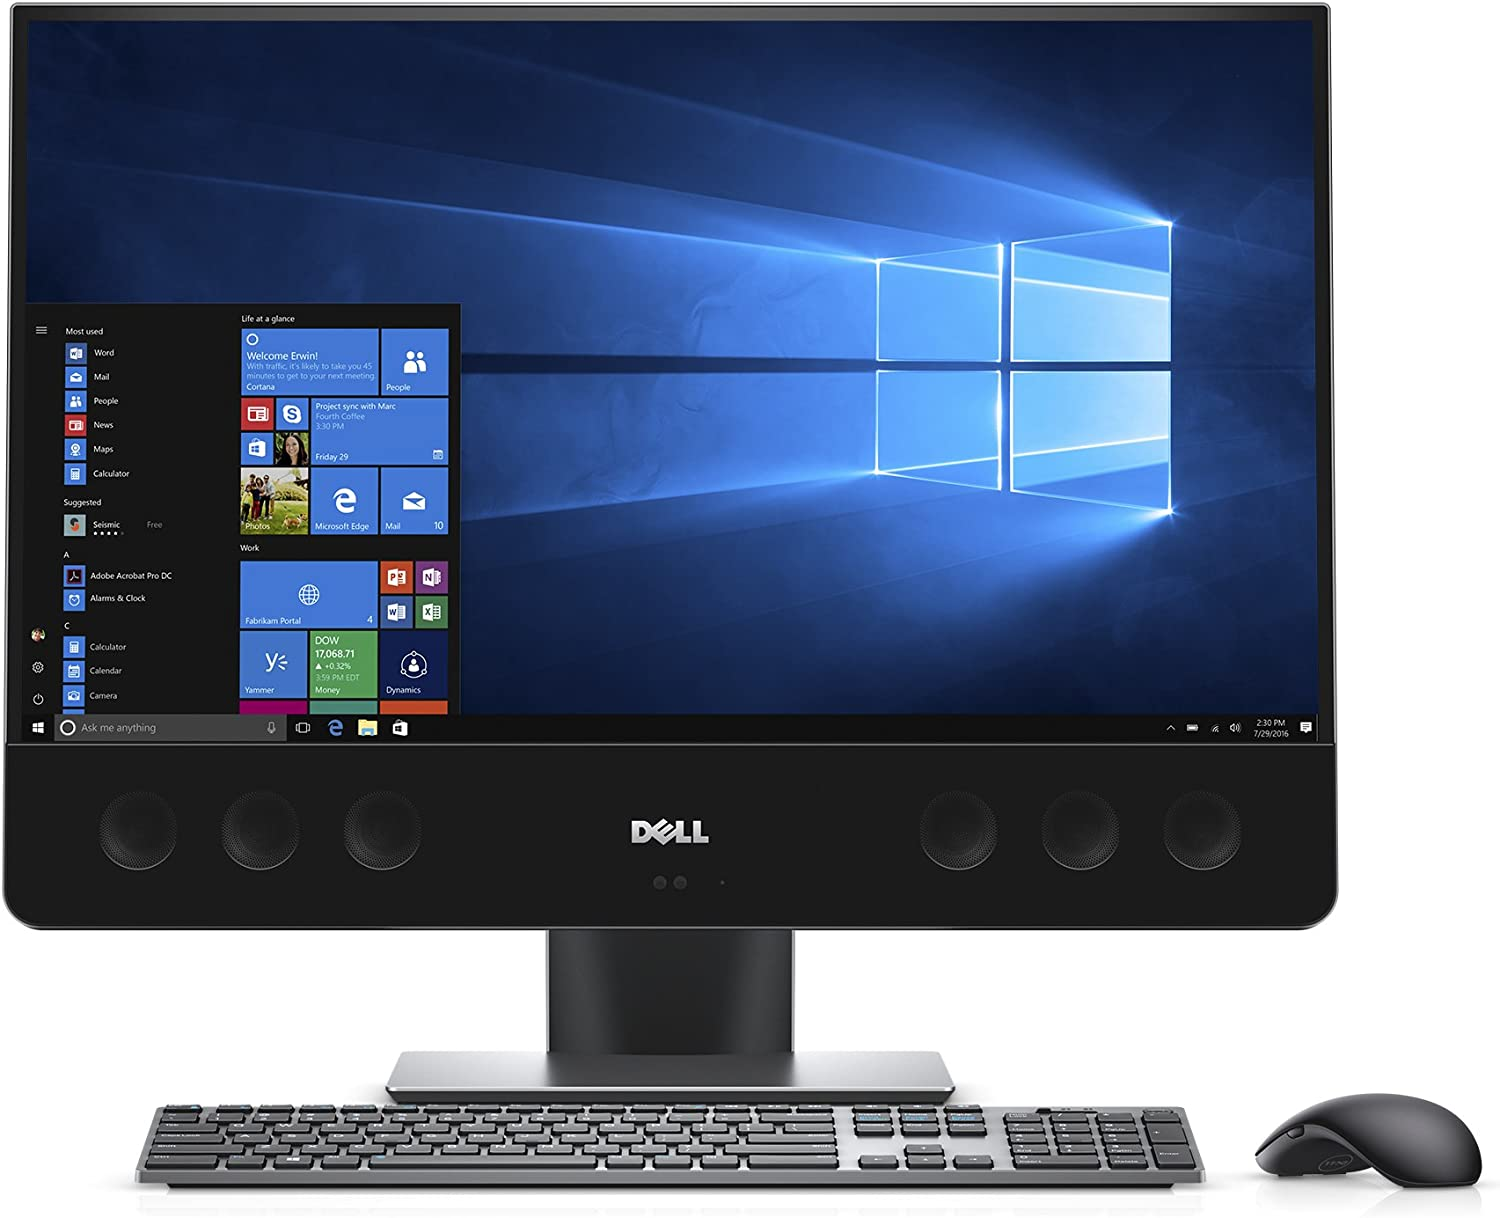 "Dell XPS7760-7213BLK-PUS XPS 7760 Desktop, 4K UHD Touch Display + Articulating Stand, 7th Gen Intel Core i7, 16GB Memory, 512GB SSD, Radeon RX570, 27"", Black"